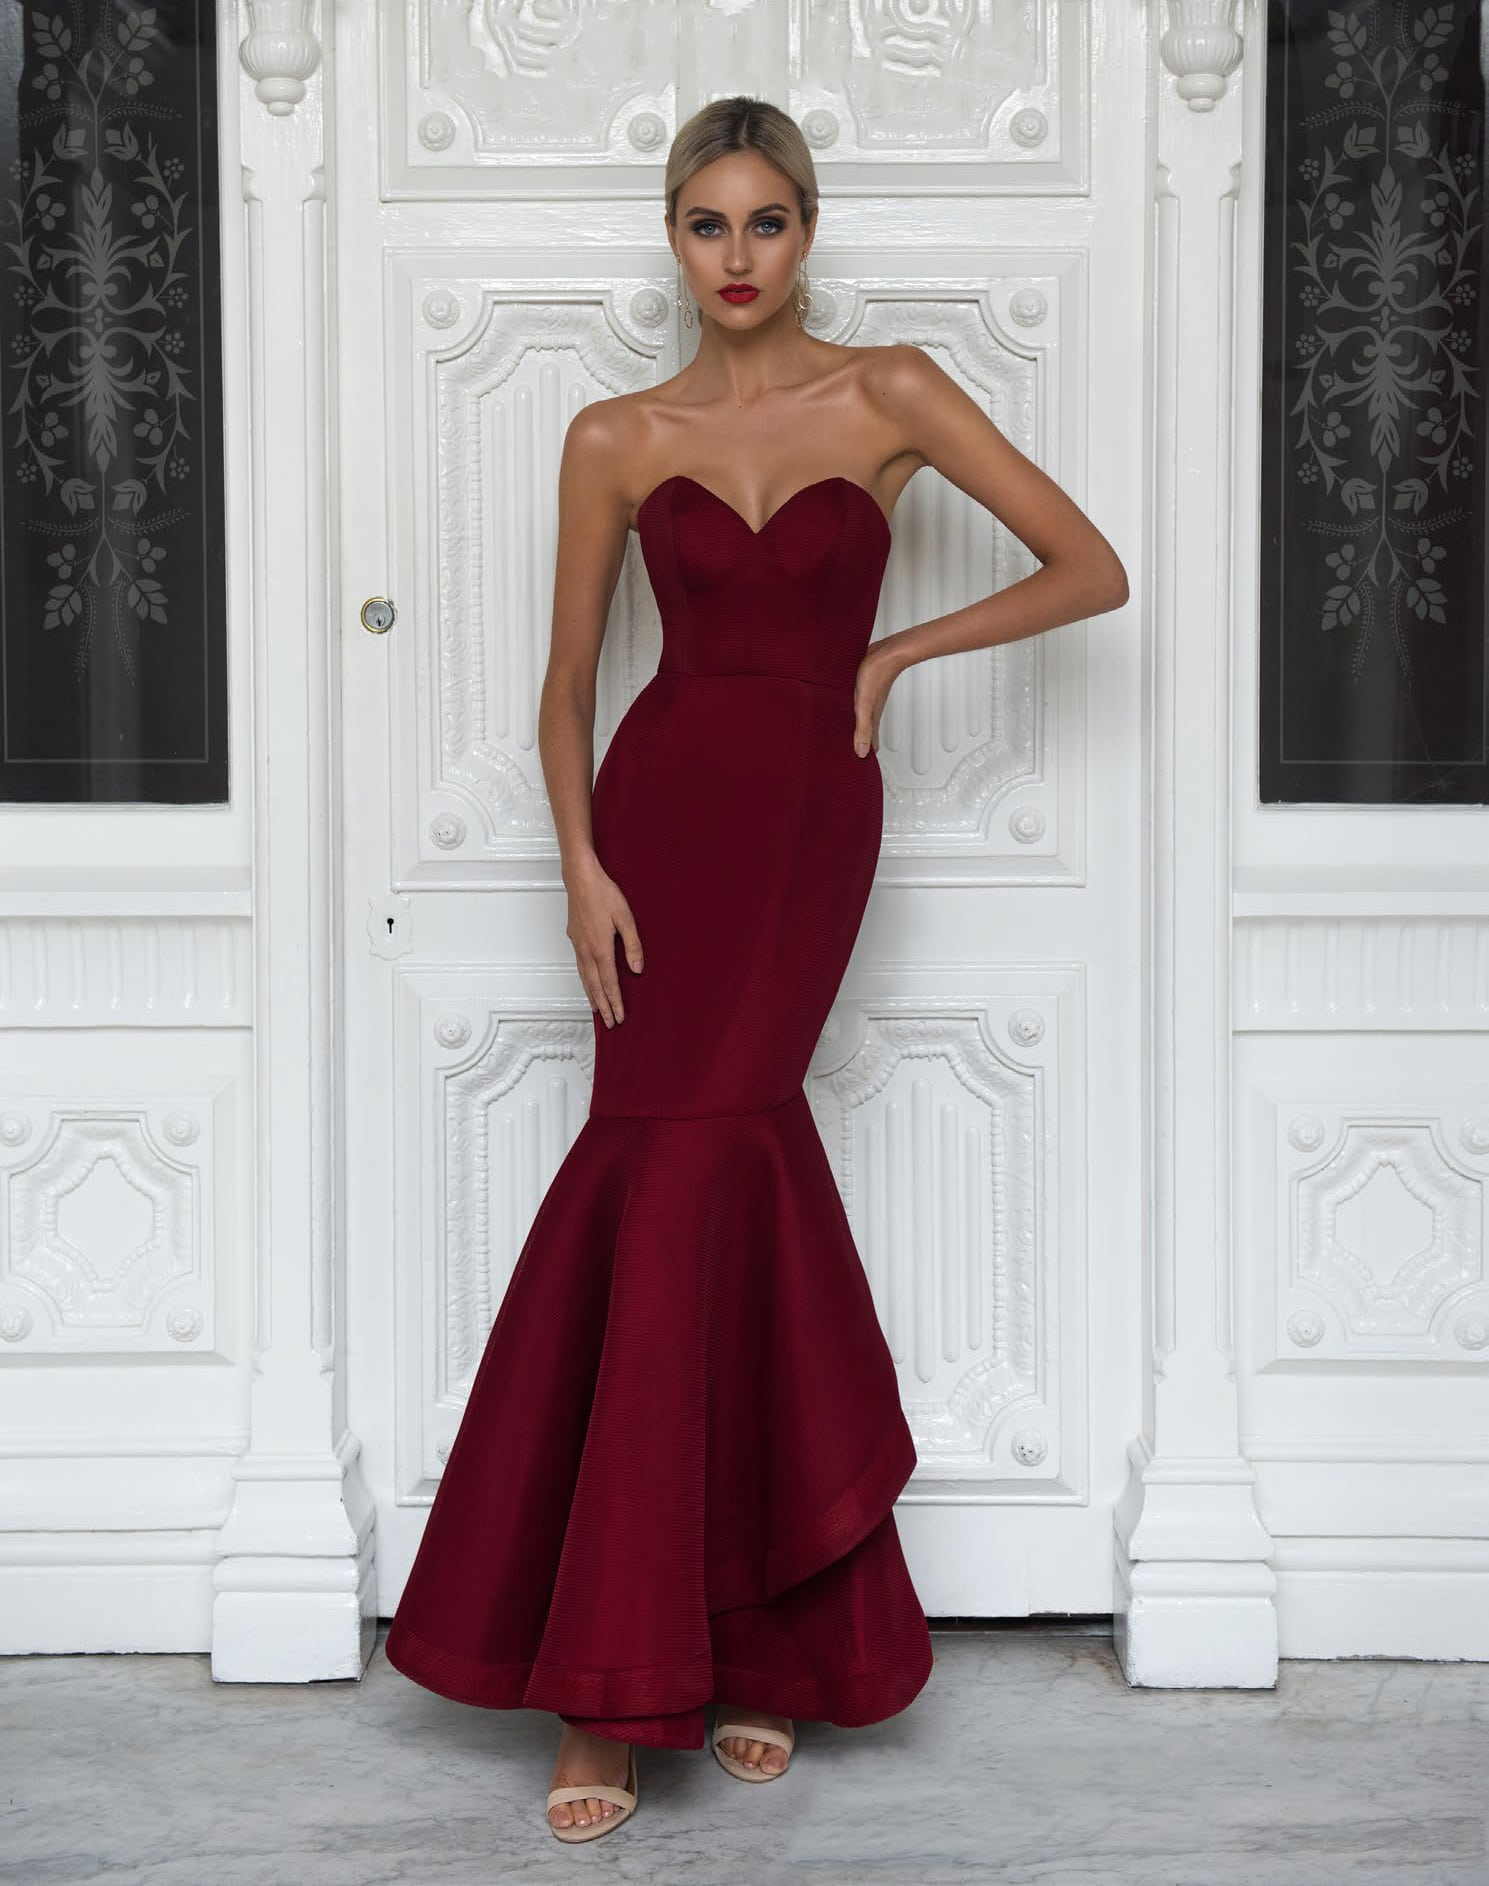 Bariano Burgundy Strapless Fishtail Gown | Alila Boutique